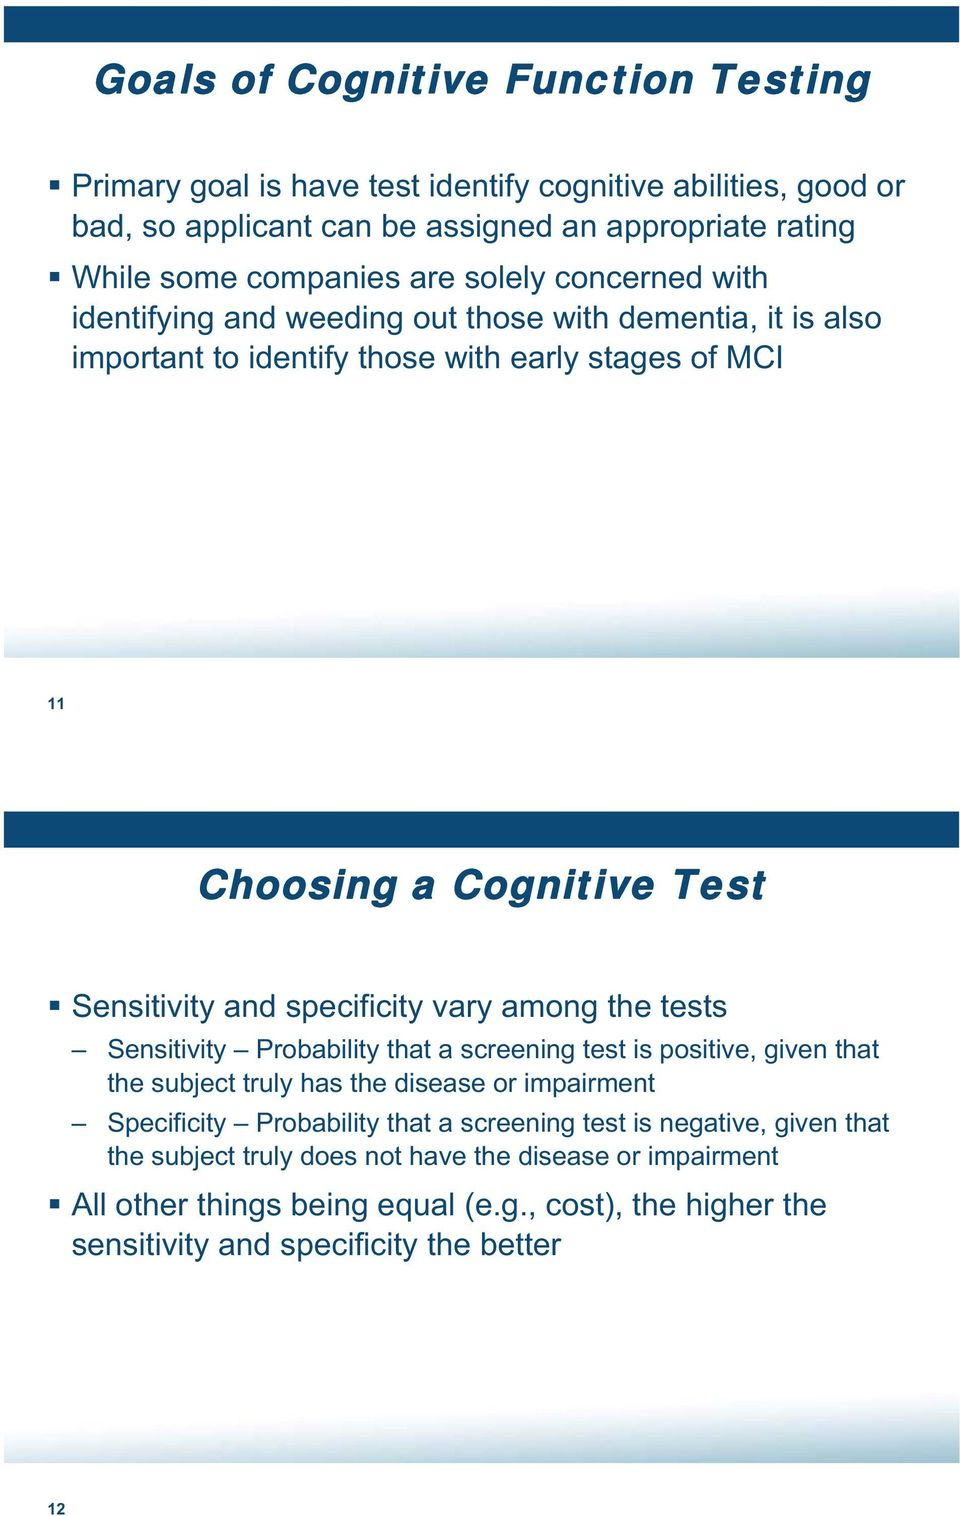 specificity vary among the tests Sensitivity Probability that a screening test is positive, given that the subject truly has the disease or impairment Specificity Probability that a